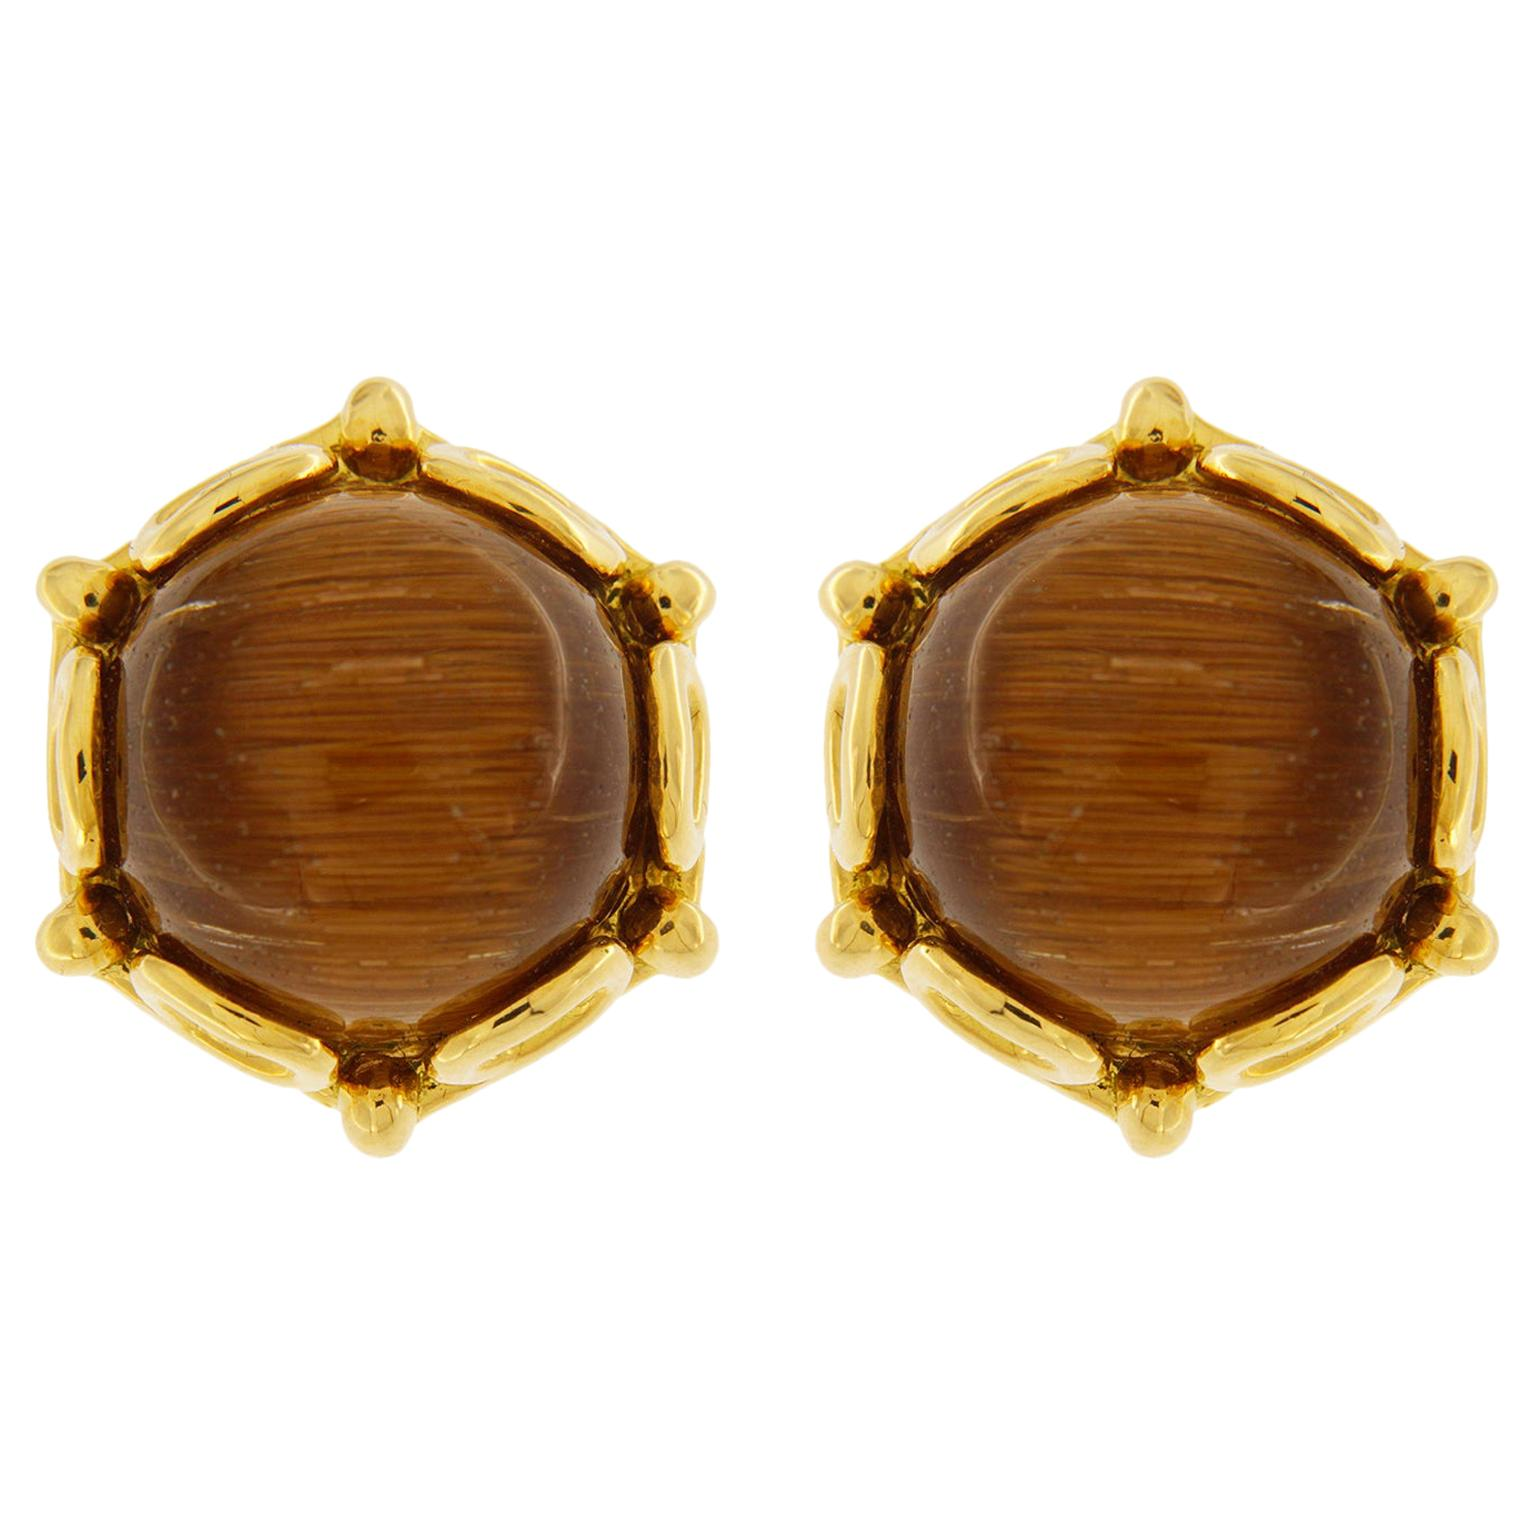 Valentin Magro Cabochon Rutilated Quartz Earrings